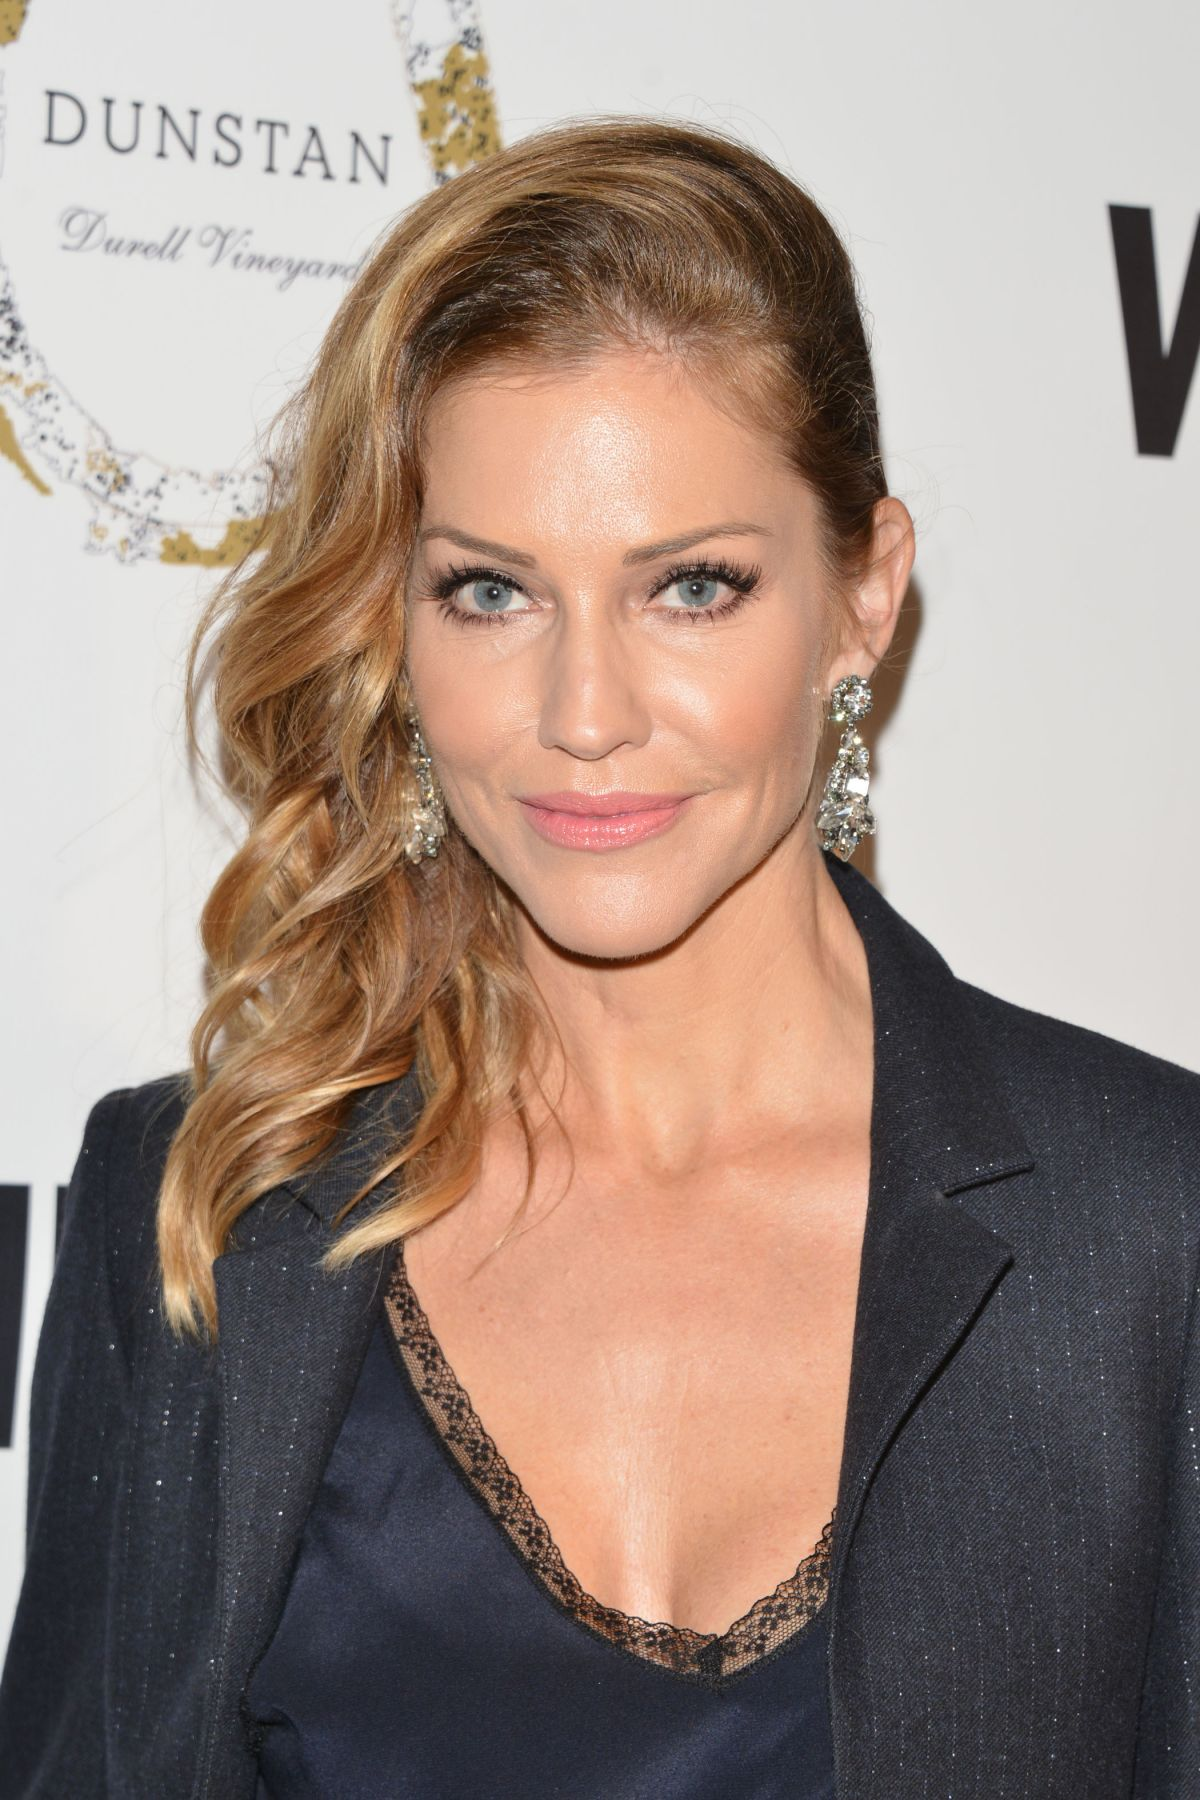 Pics Tricia Helfer nudes (92 photos), Tits, Fappening, Instagram, swimsuit 2019